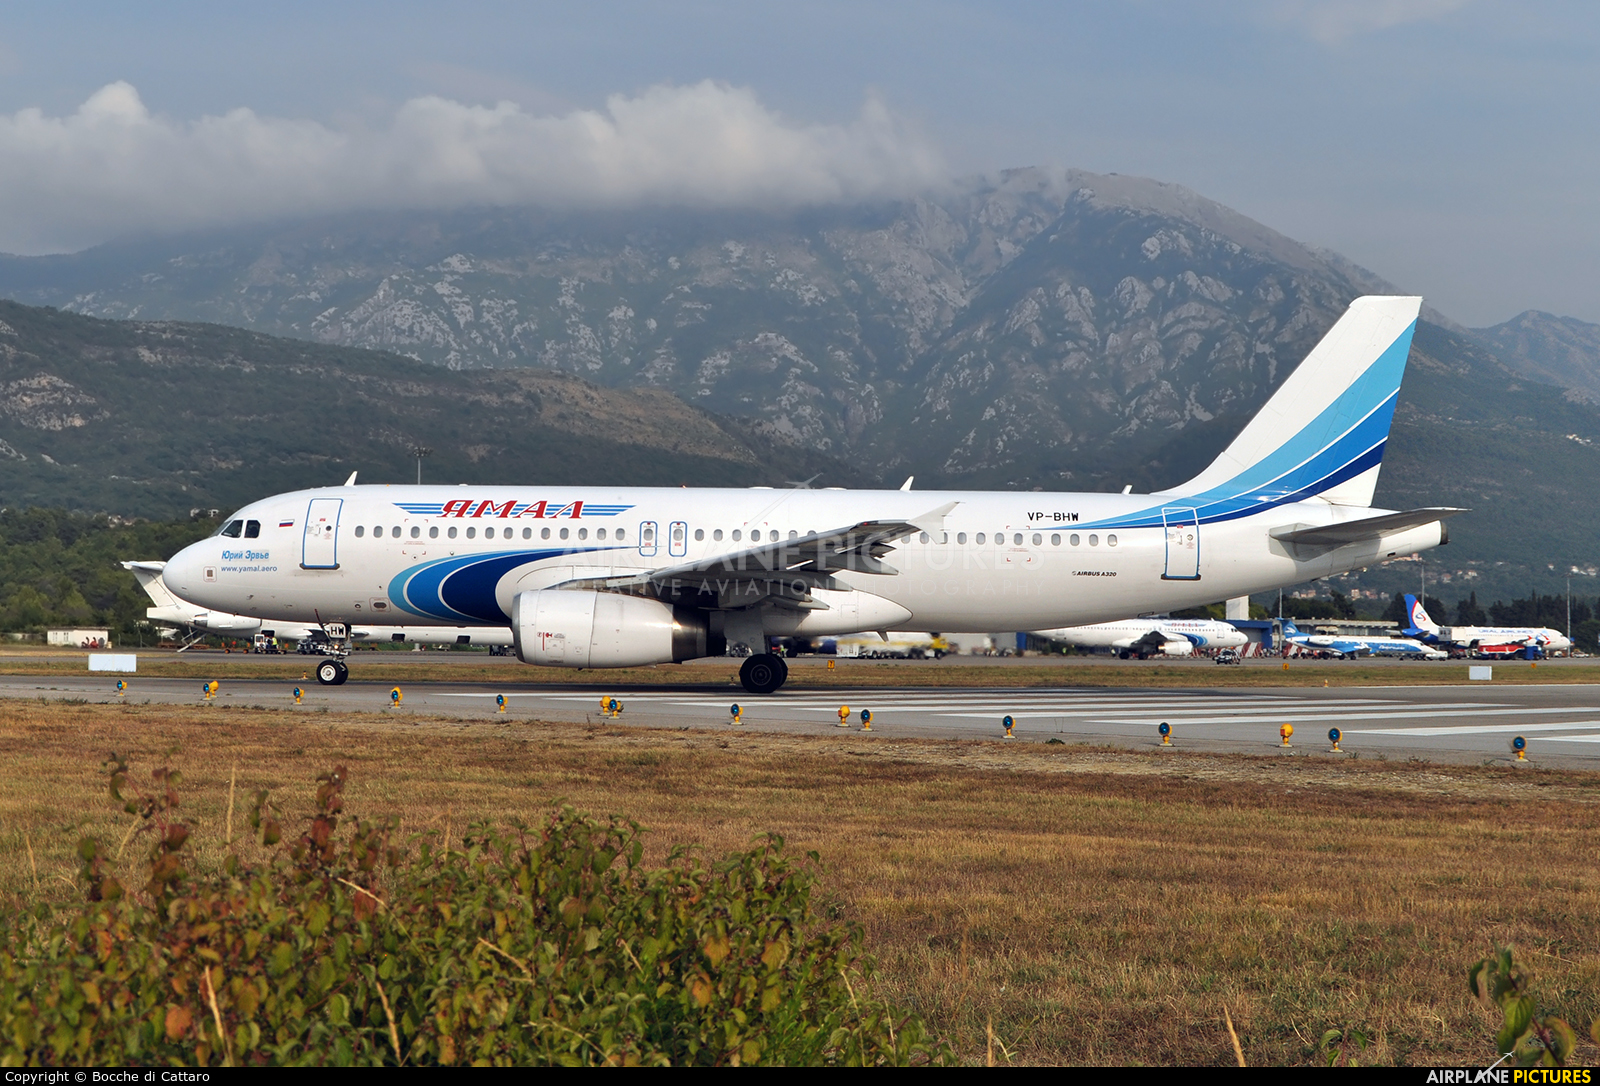 Yamal Airlines VP-BHW aircraft at Tivat